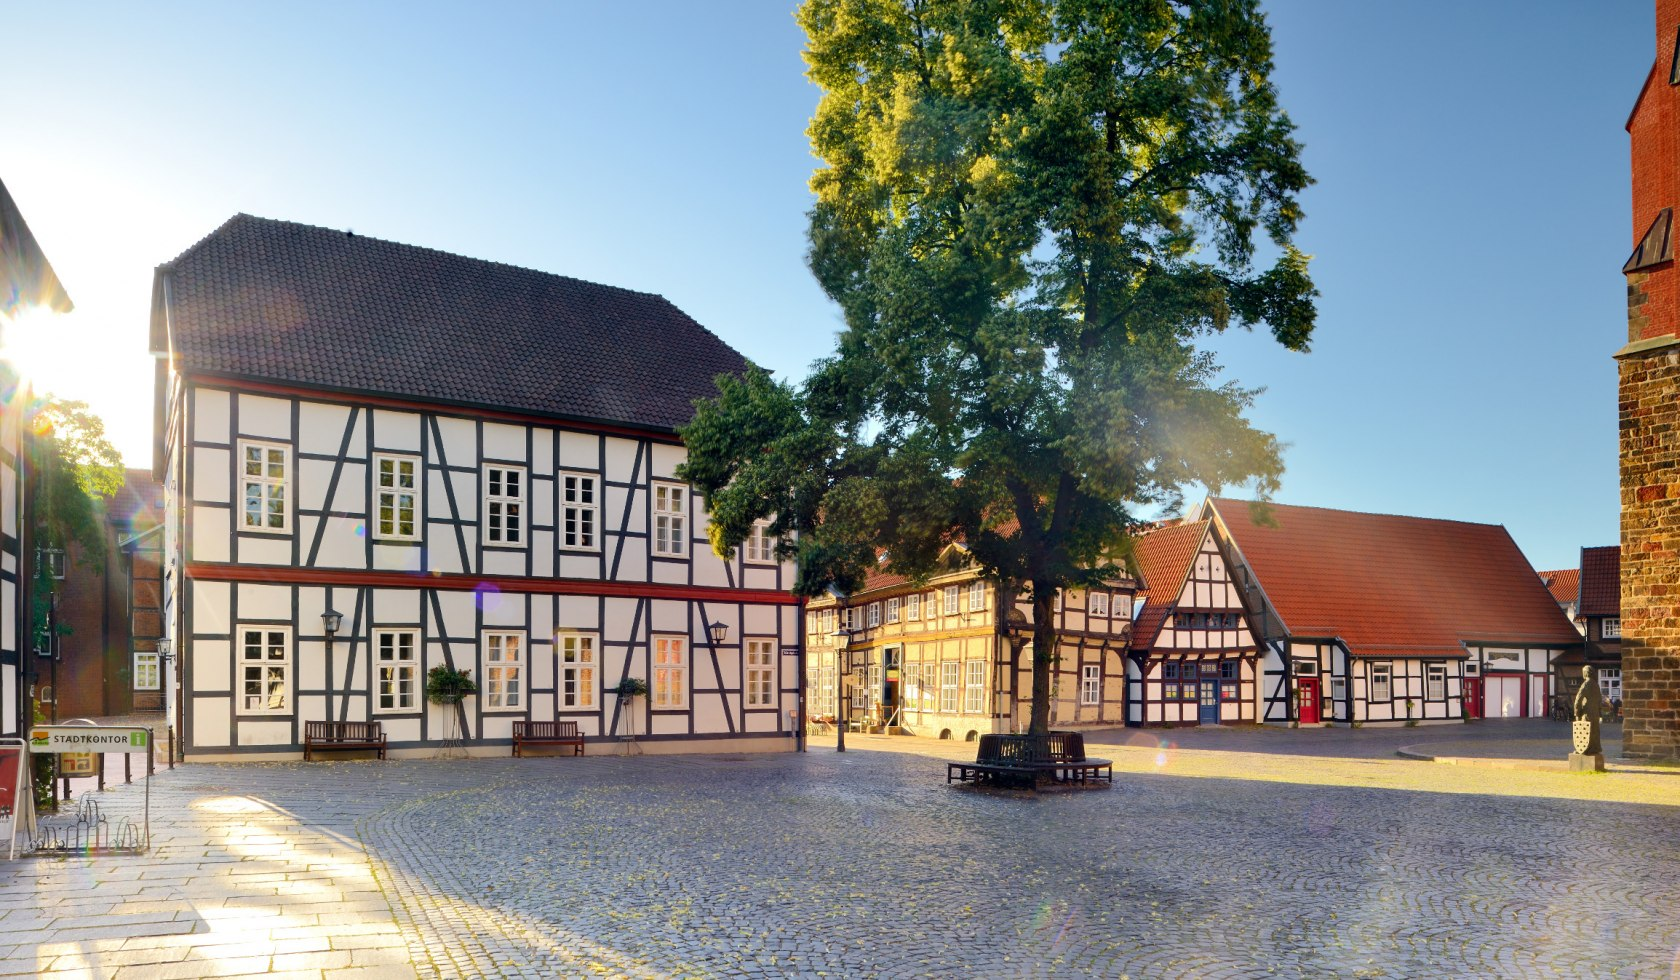 Market place in Nienburg with half-timbered houses